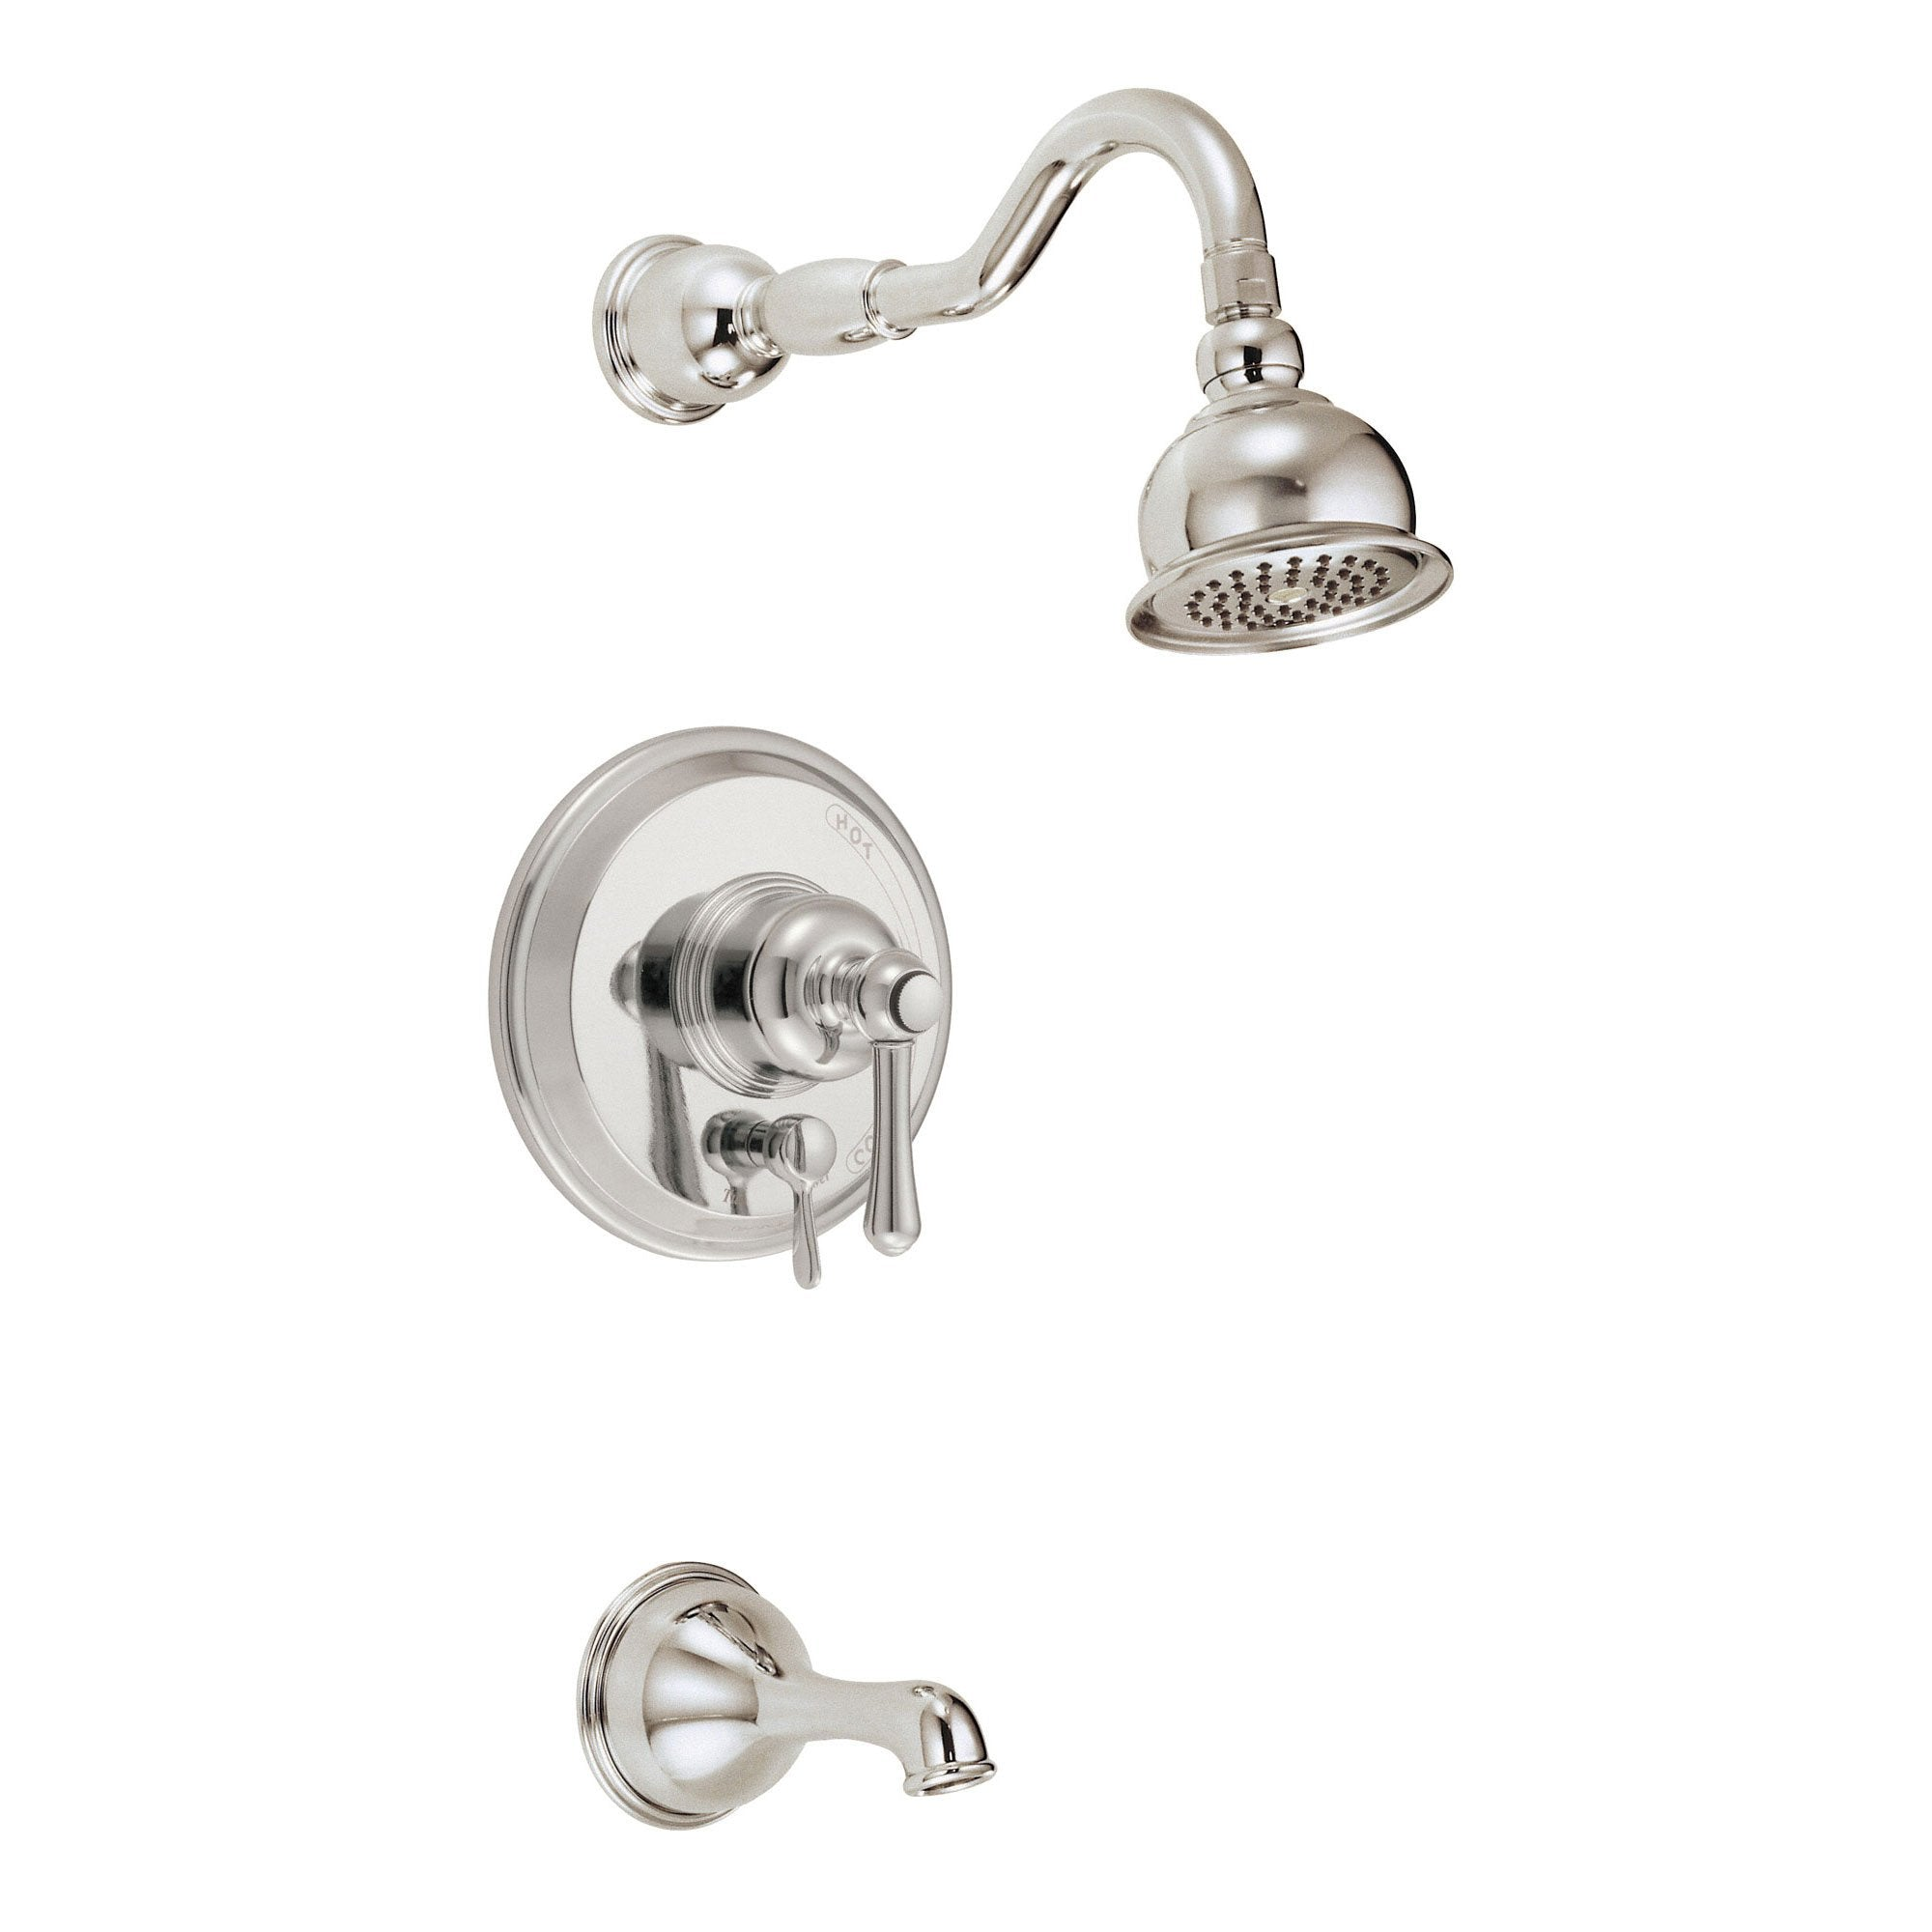 Danze Opulence Polished Nickel Single Handle Tub and Shower Combination Faucet INCLUDES Rough-in Valve